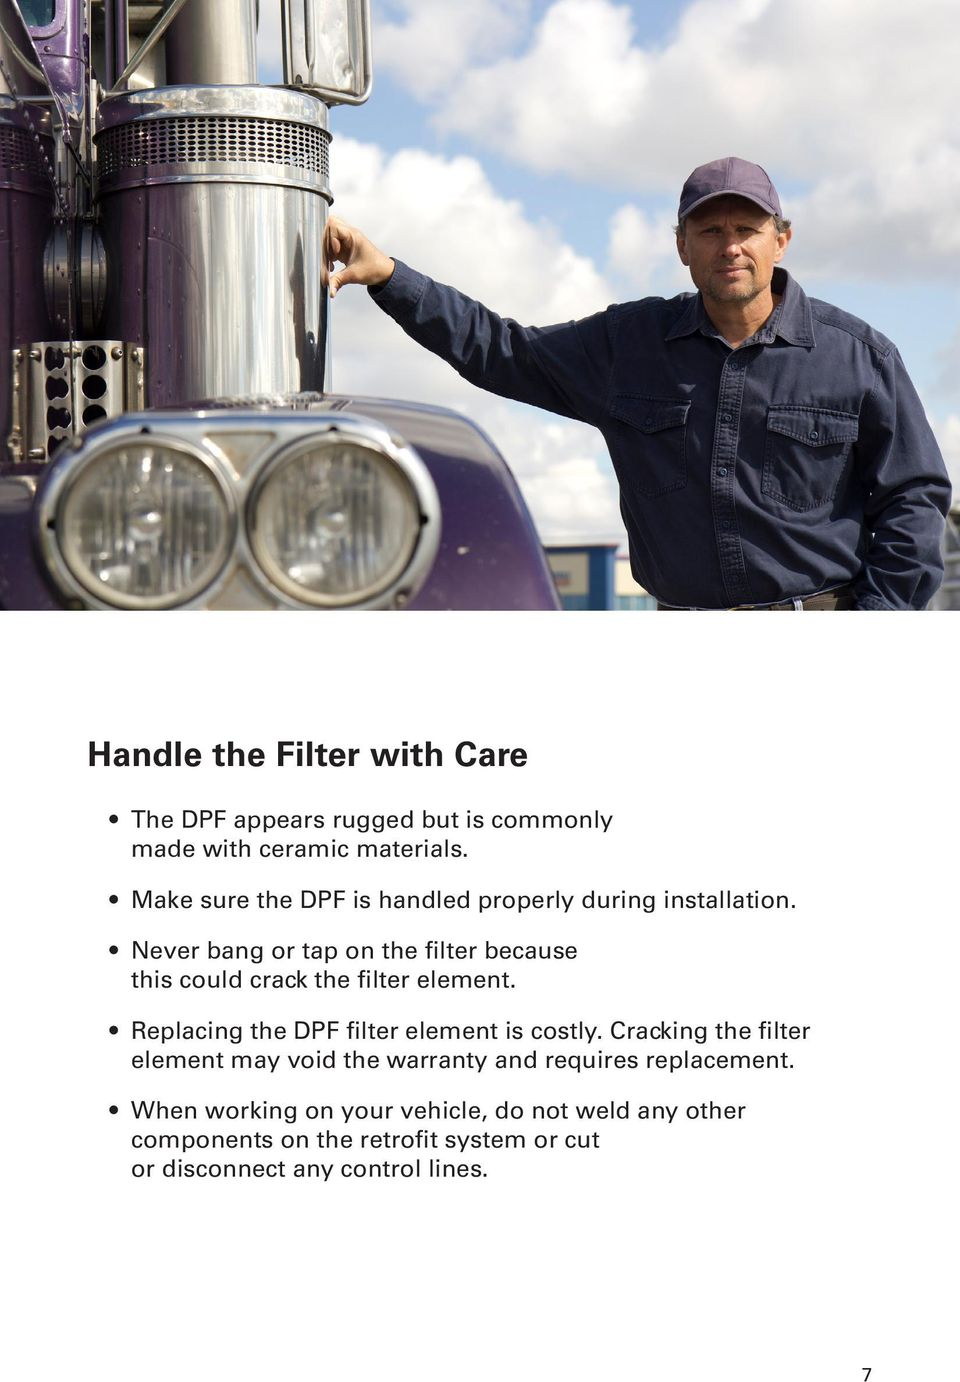 Never bang or tap on the filter because this could crack the filter element. Replacing the DPF filter element is costly.